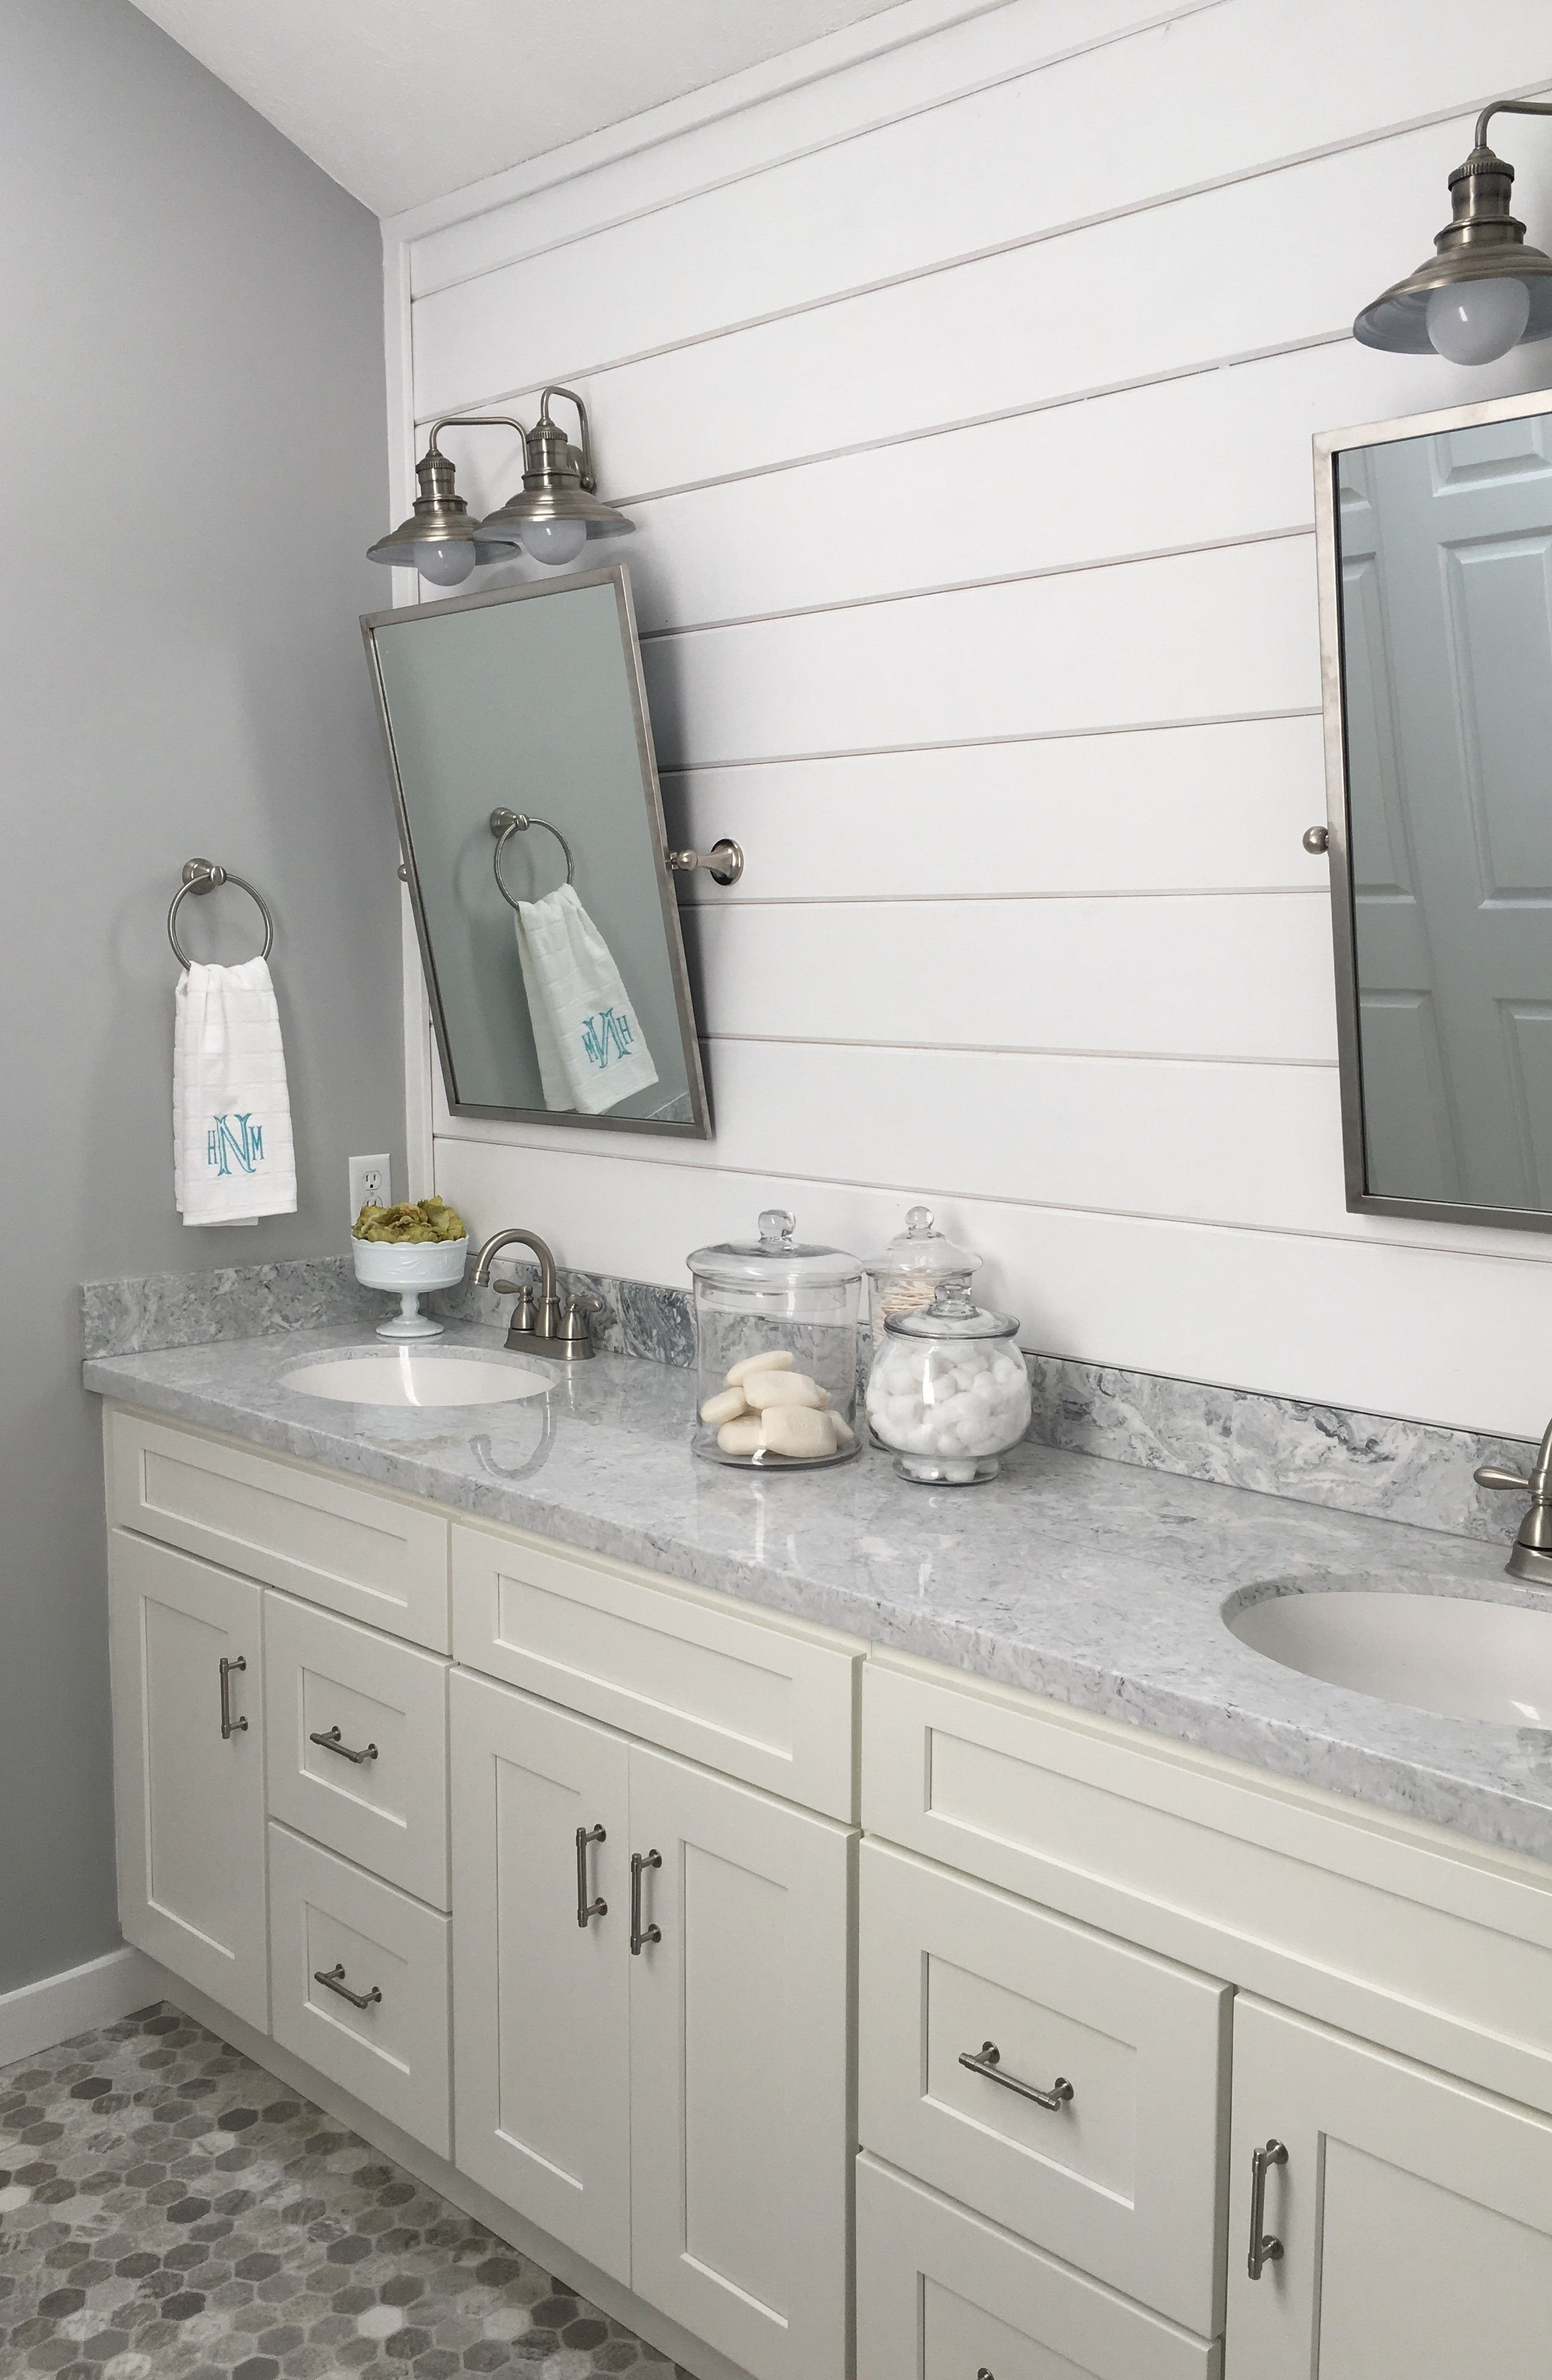 How To Remodel Your Master Bathroom On A Budget Pinterest Dream - Renovate your bathroom on a budget